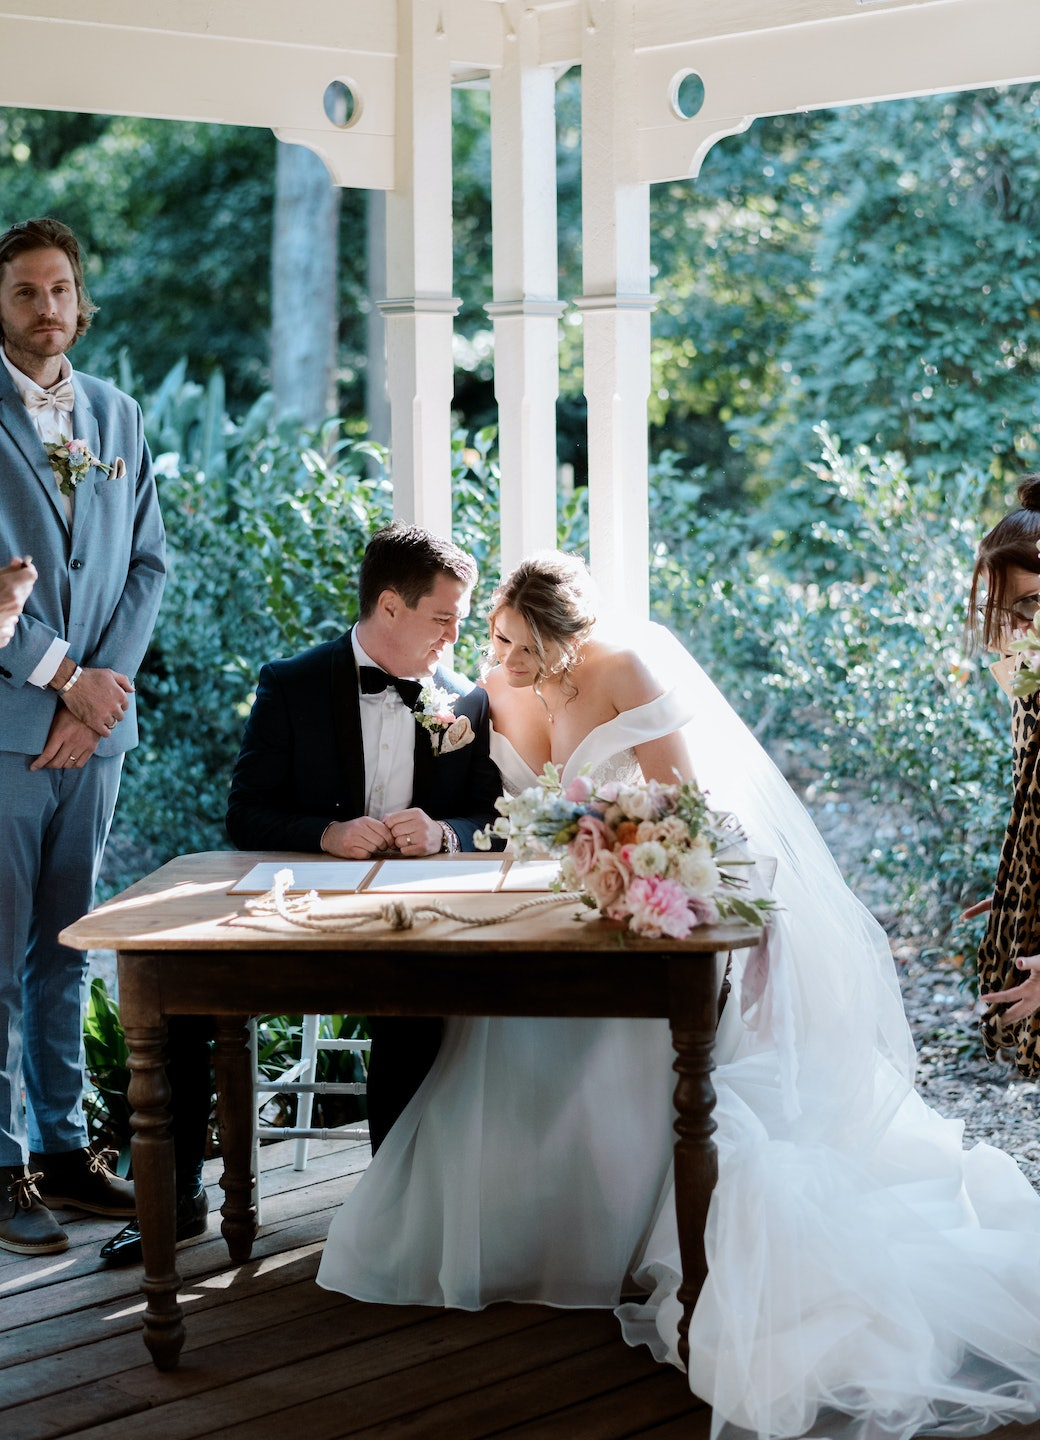 Bride and groom signing table